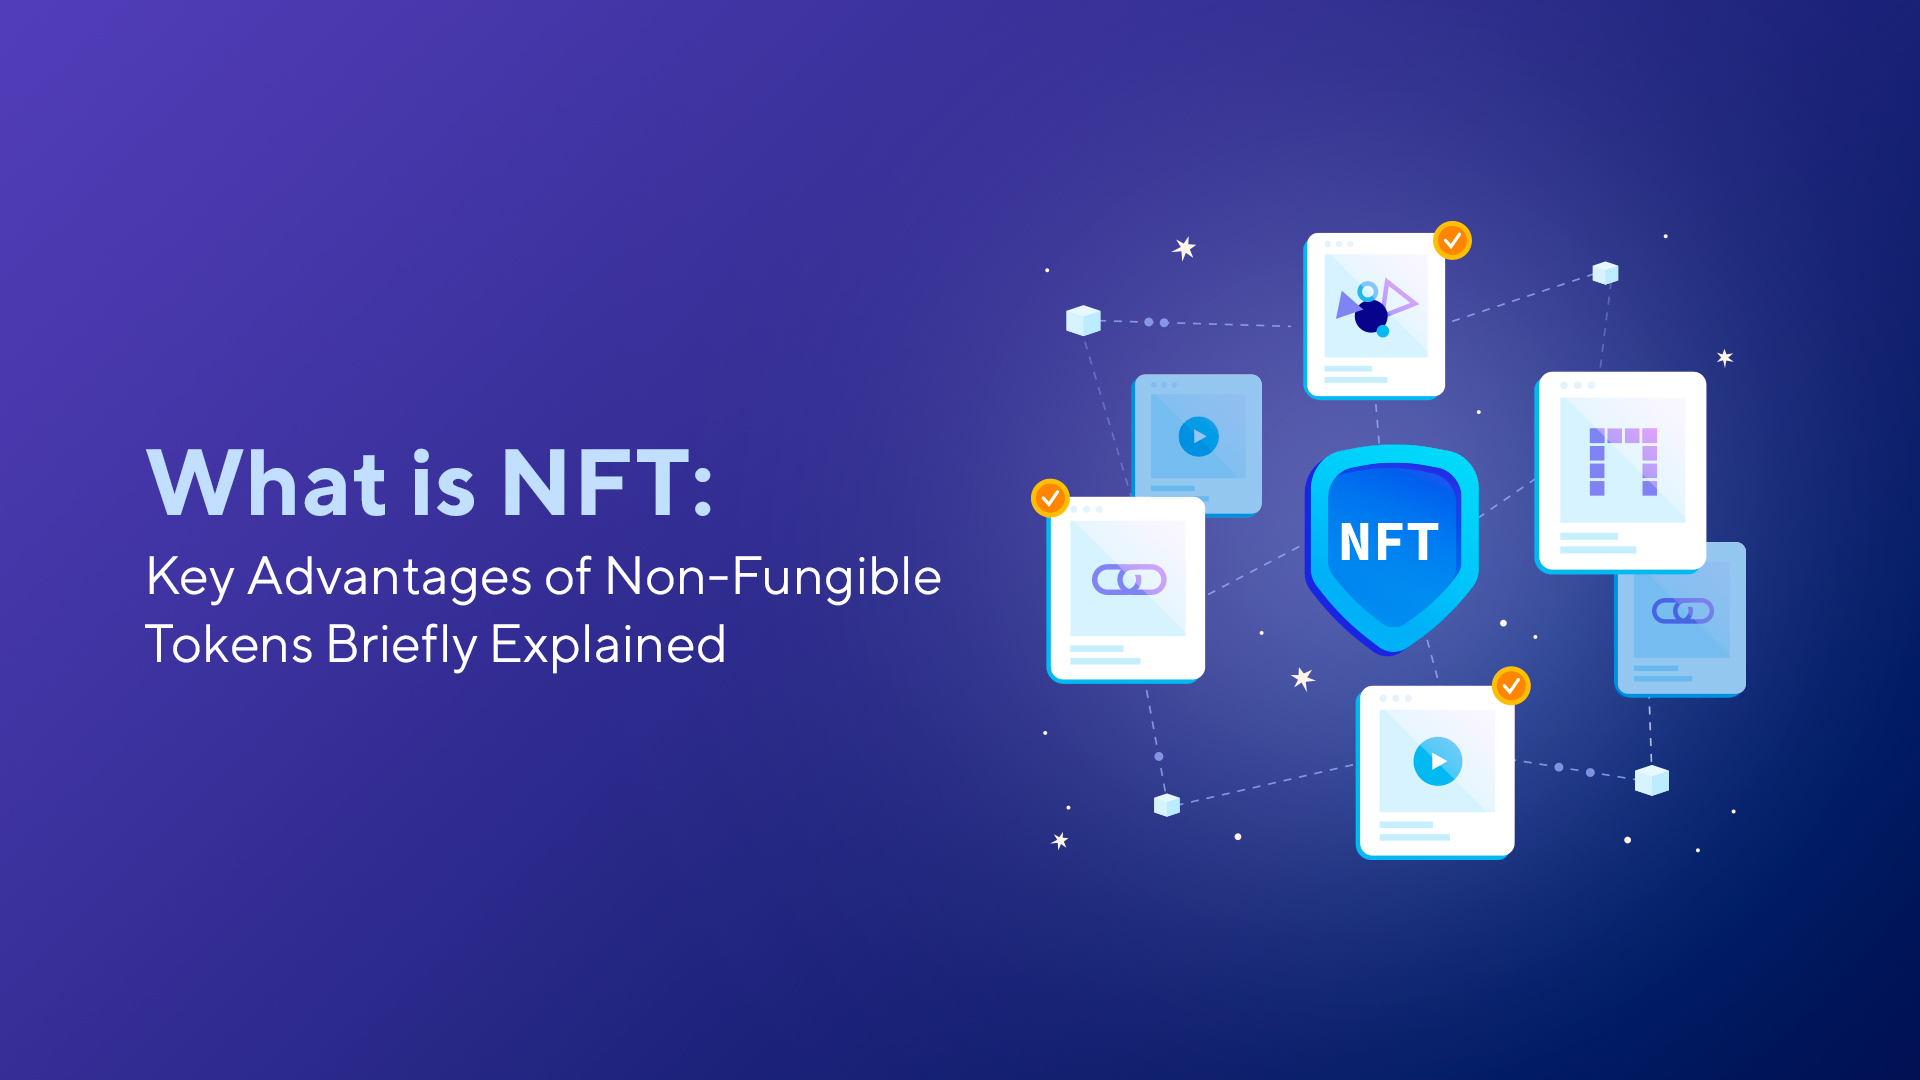 What Is NFT: Key Advantages of Non-Fungible Tokens Briefly Explained